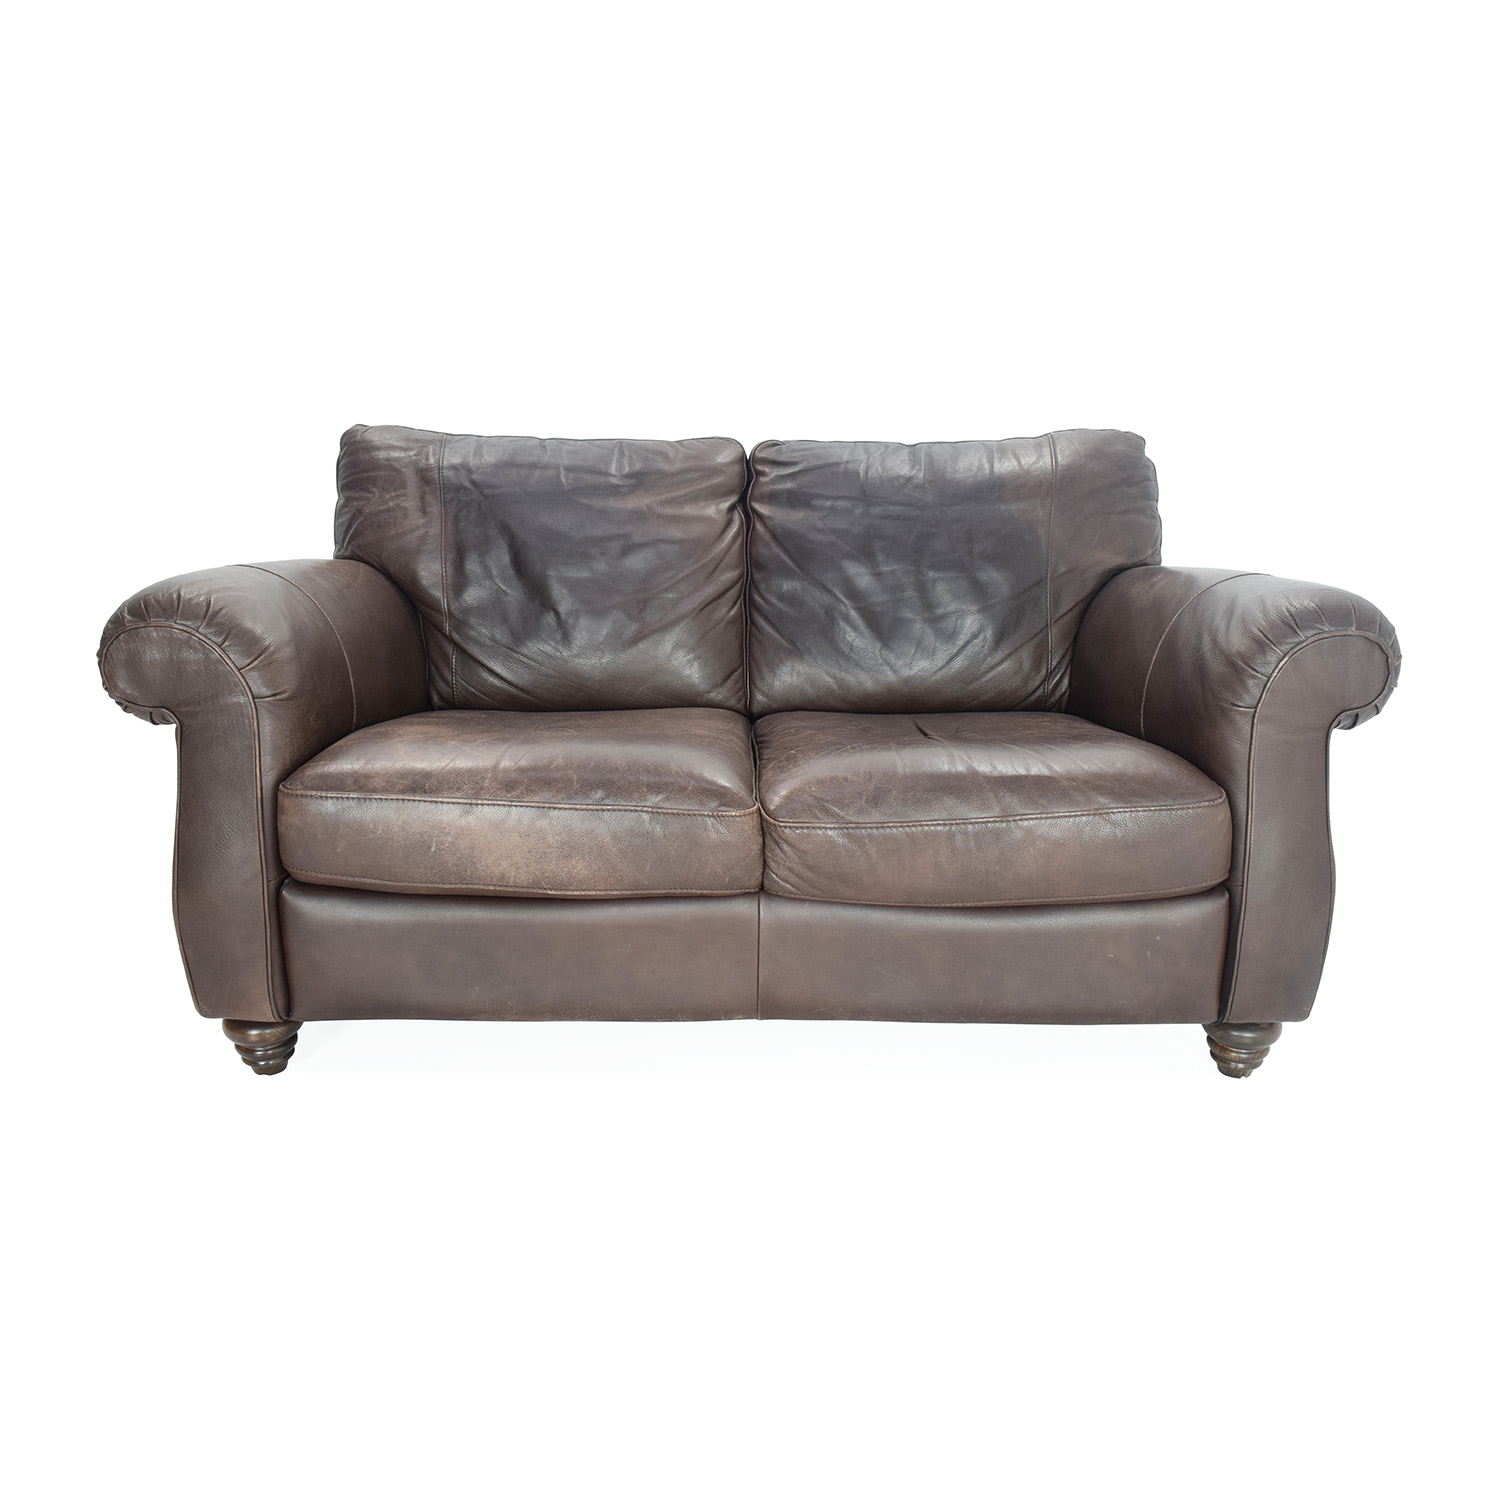 Surprising Natuzzi Leather Loveseat Gmtry Best Dining Table And Chair Ideas Images Gmtryco